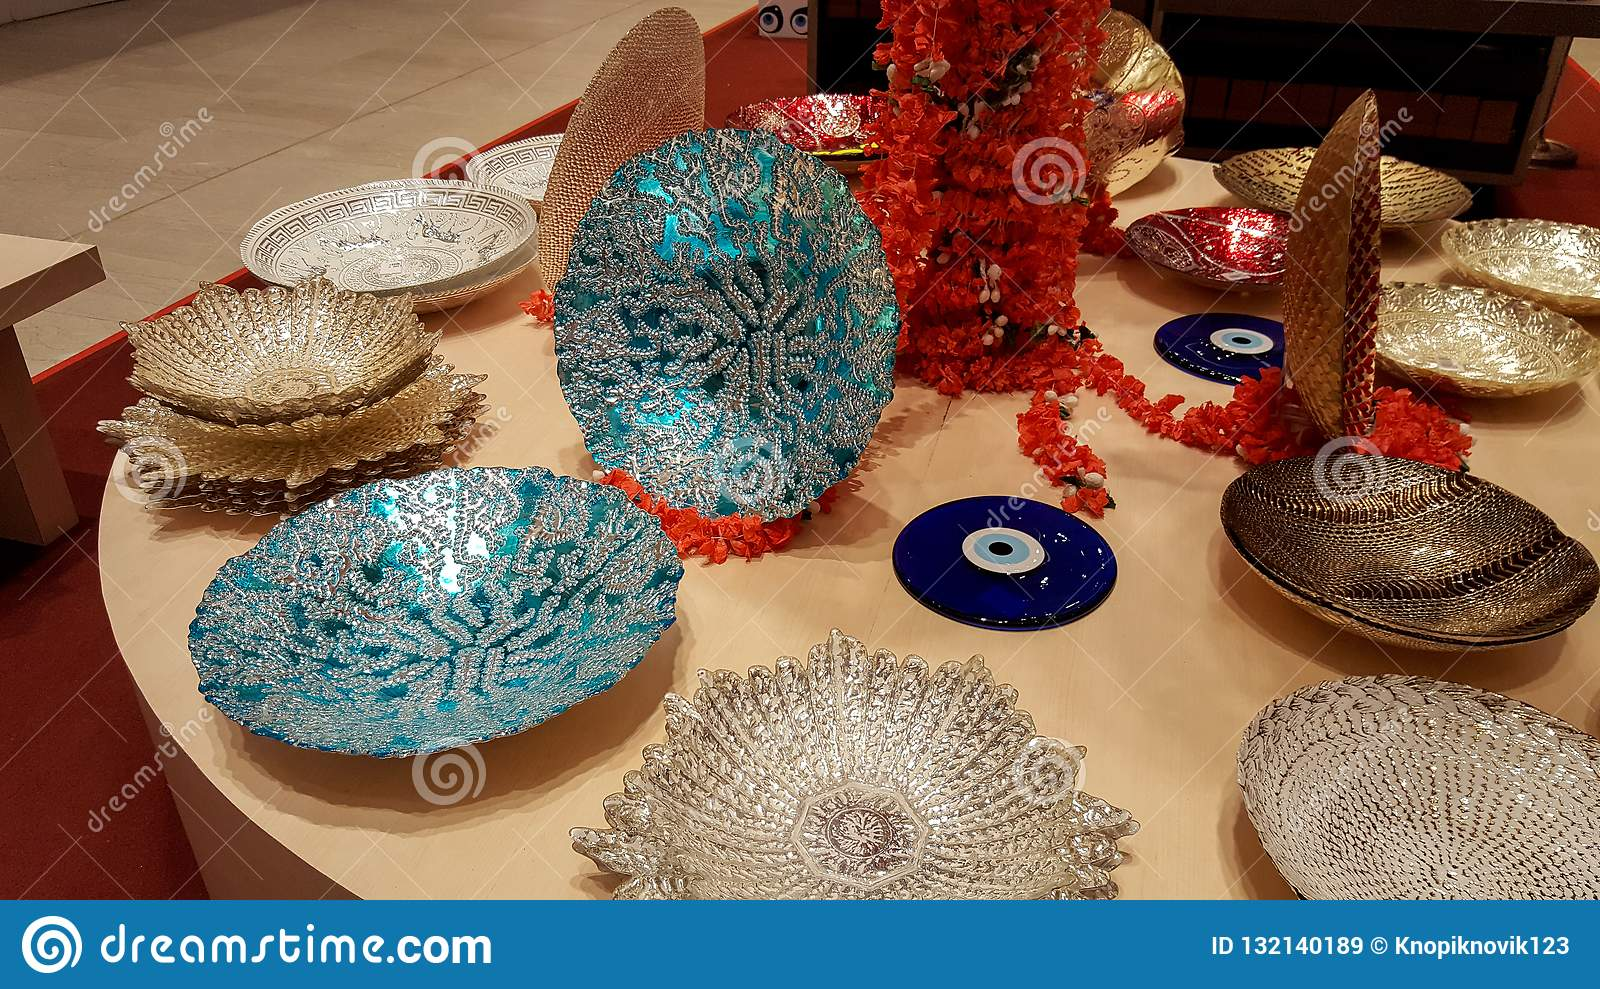 Luxury Modern Ceramic Plates On Display At A Shop Stock Image Image Of Beige Decoration 132140189